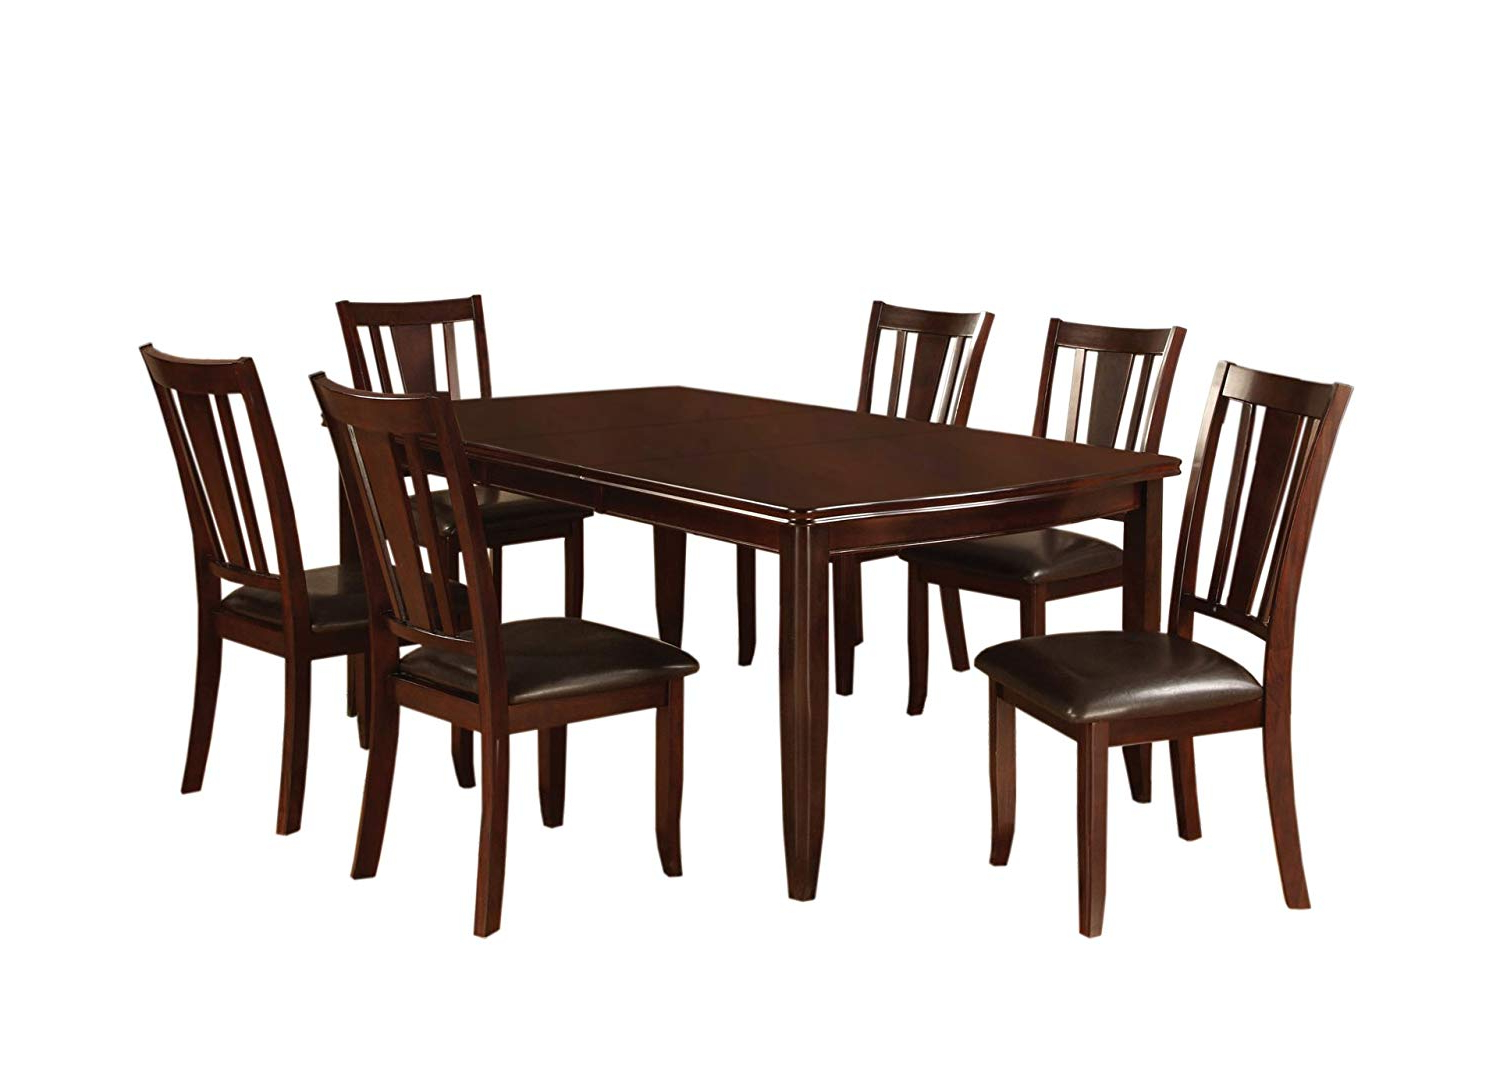 Rustic Brown Lorraine Pedestal Extending Dining Tables Throughout Widely Used Furniture Of America Anlow 7 Piece Dining Table Set With 18 Inch Expandable Leaf, Espresso (View 18 of 25)